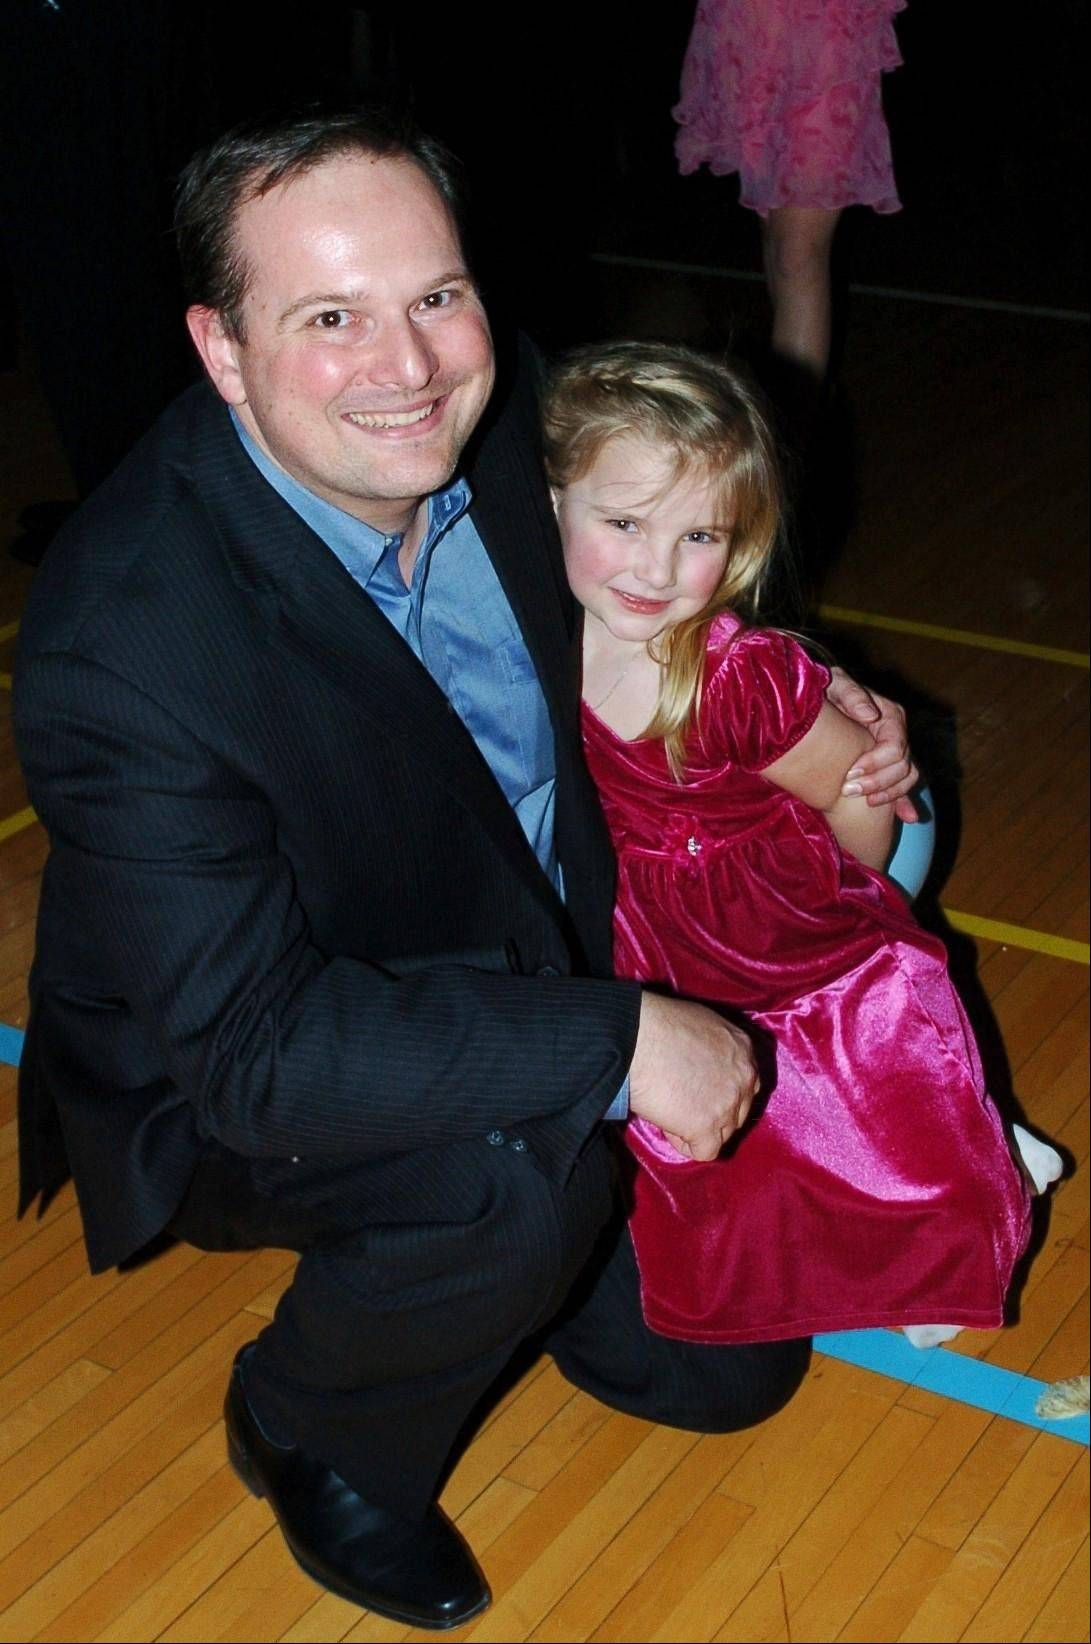 Put on your dancing shoes and come to the Prospect Choral Boosters' annual Daddy Daughter Dance from 7 to 9 p.m. Saturday, Feb. 9, in the Prospect High School field house, 801 W. Kensington Road, Mount Prospect.